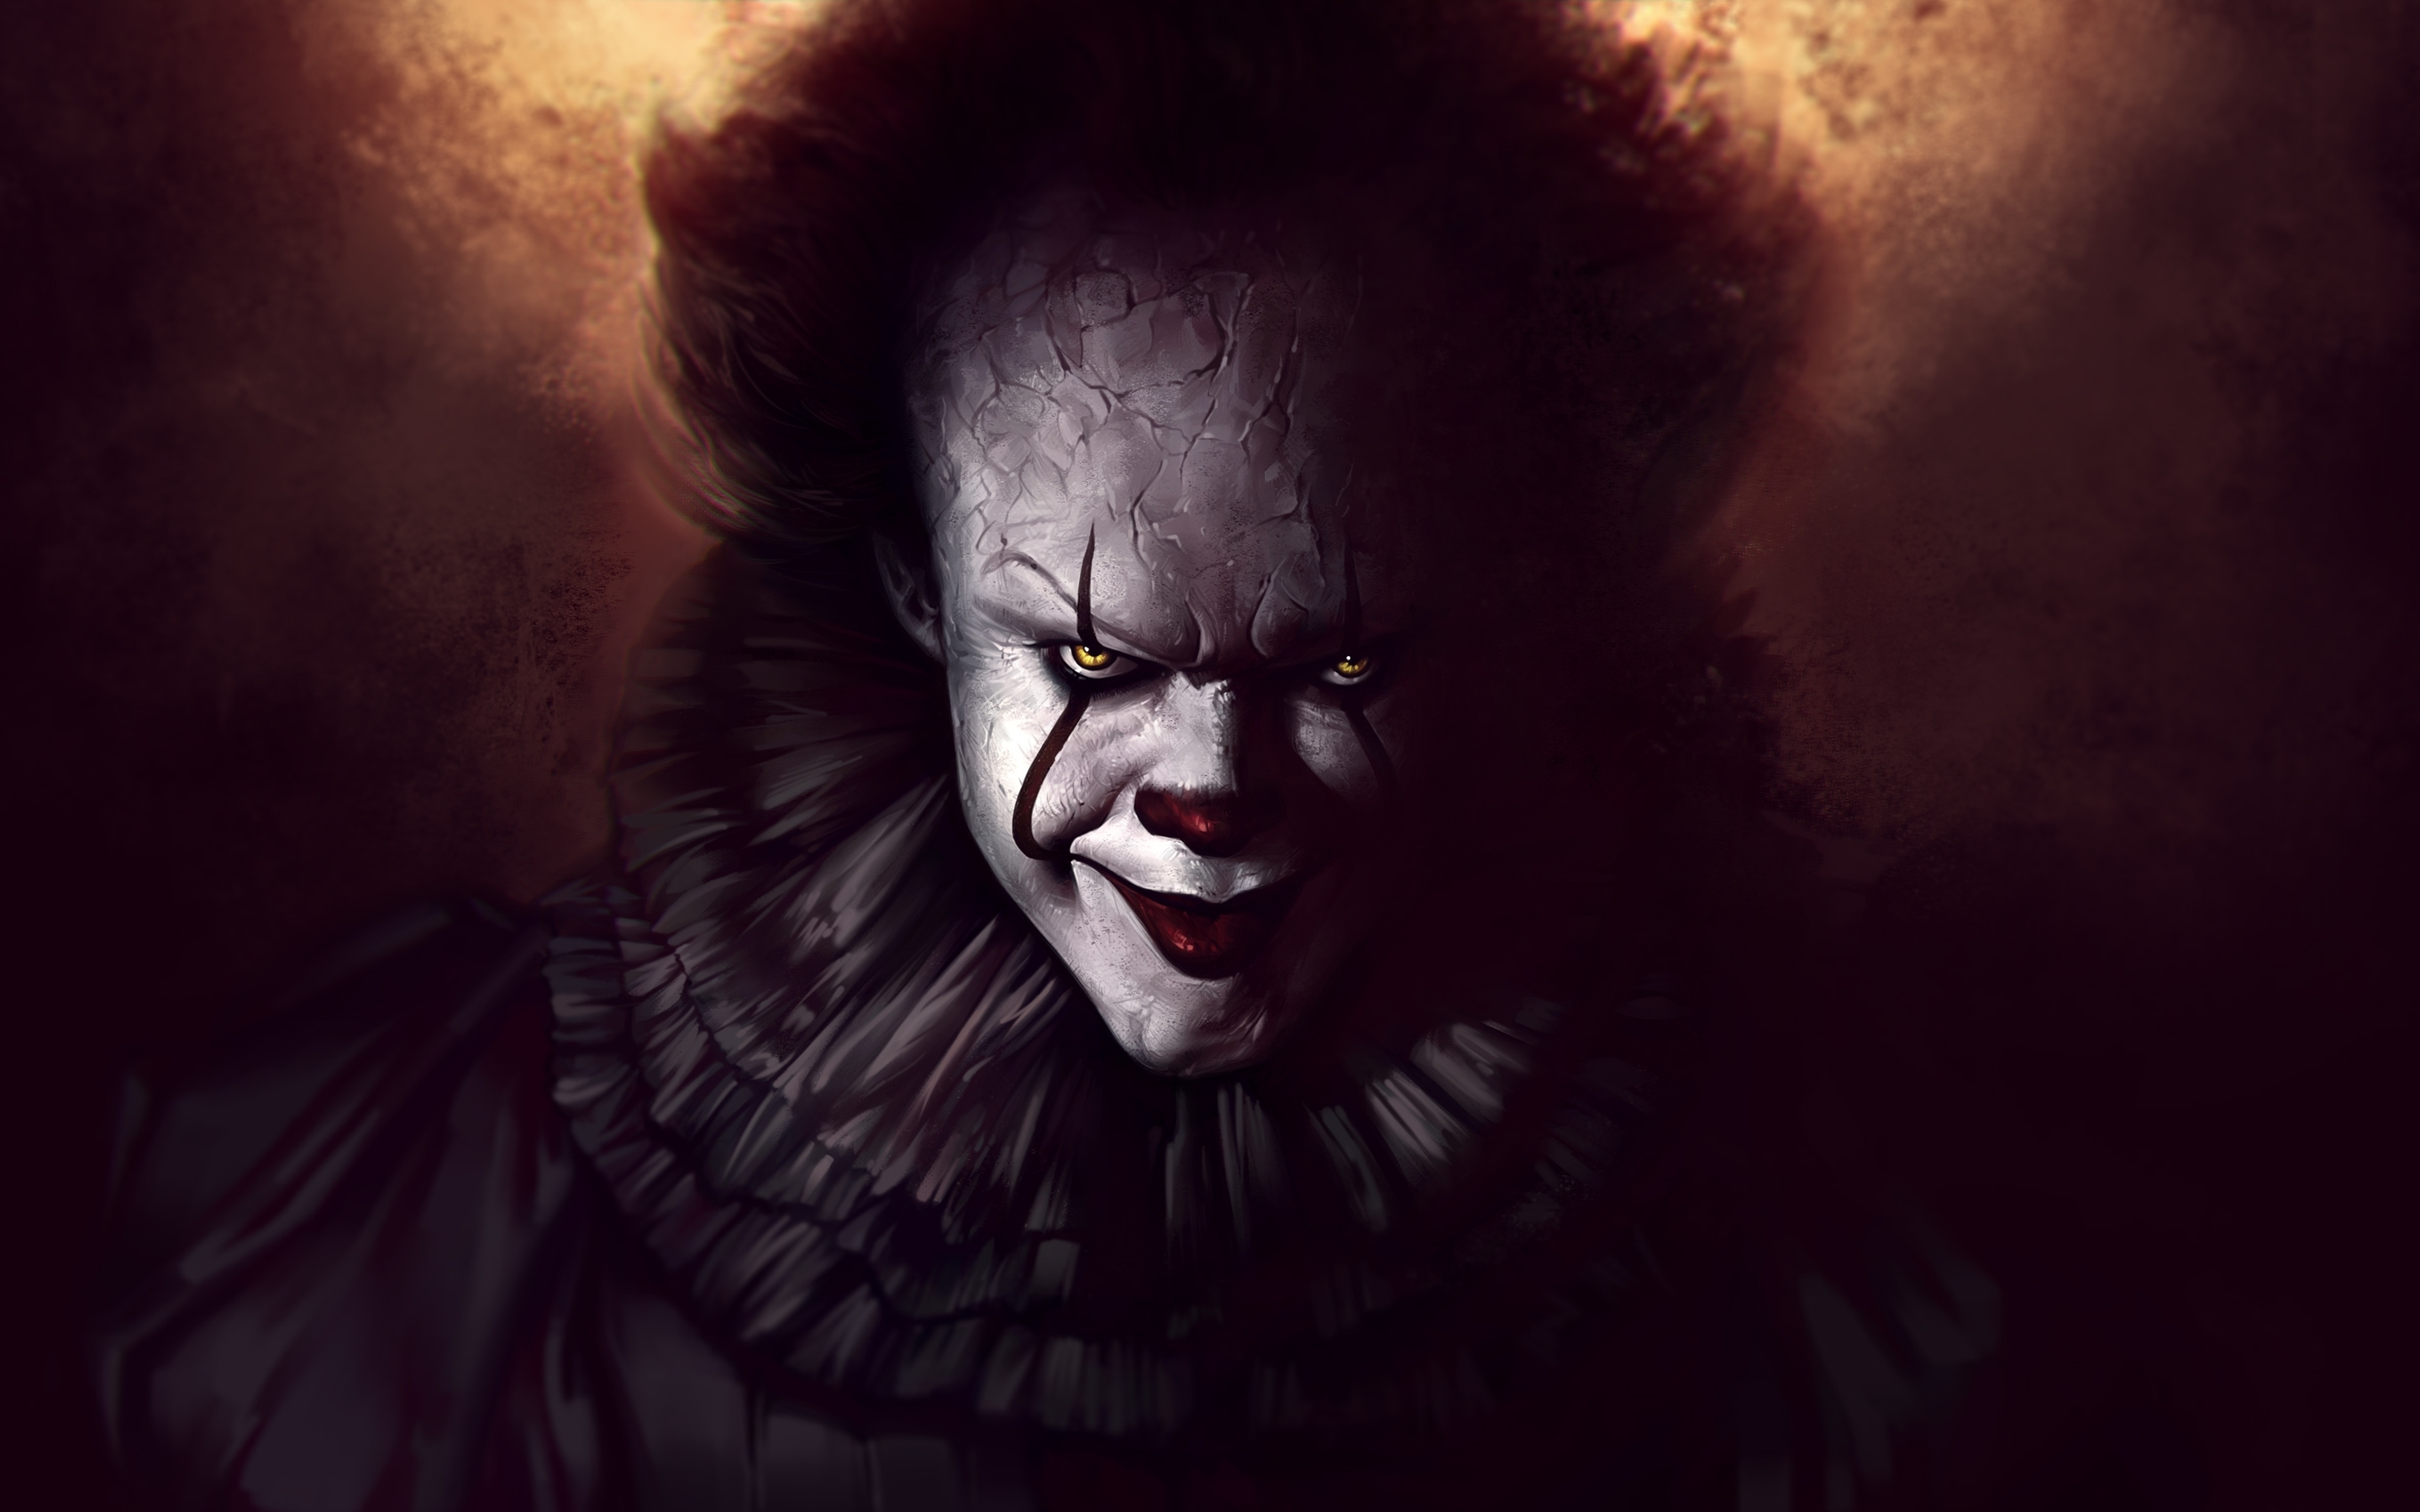 Image Details Source Hdwallpapersin Title Pennywise The Dancing Clown